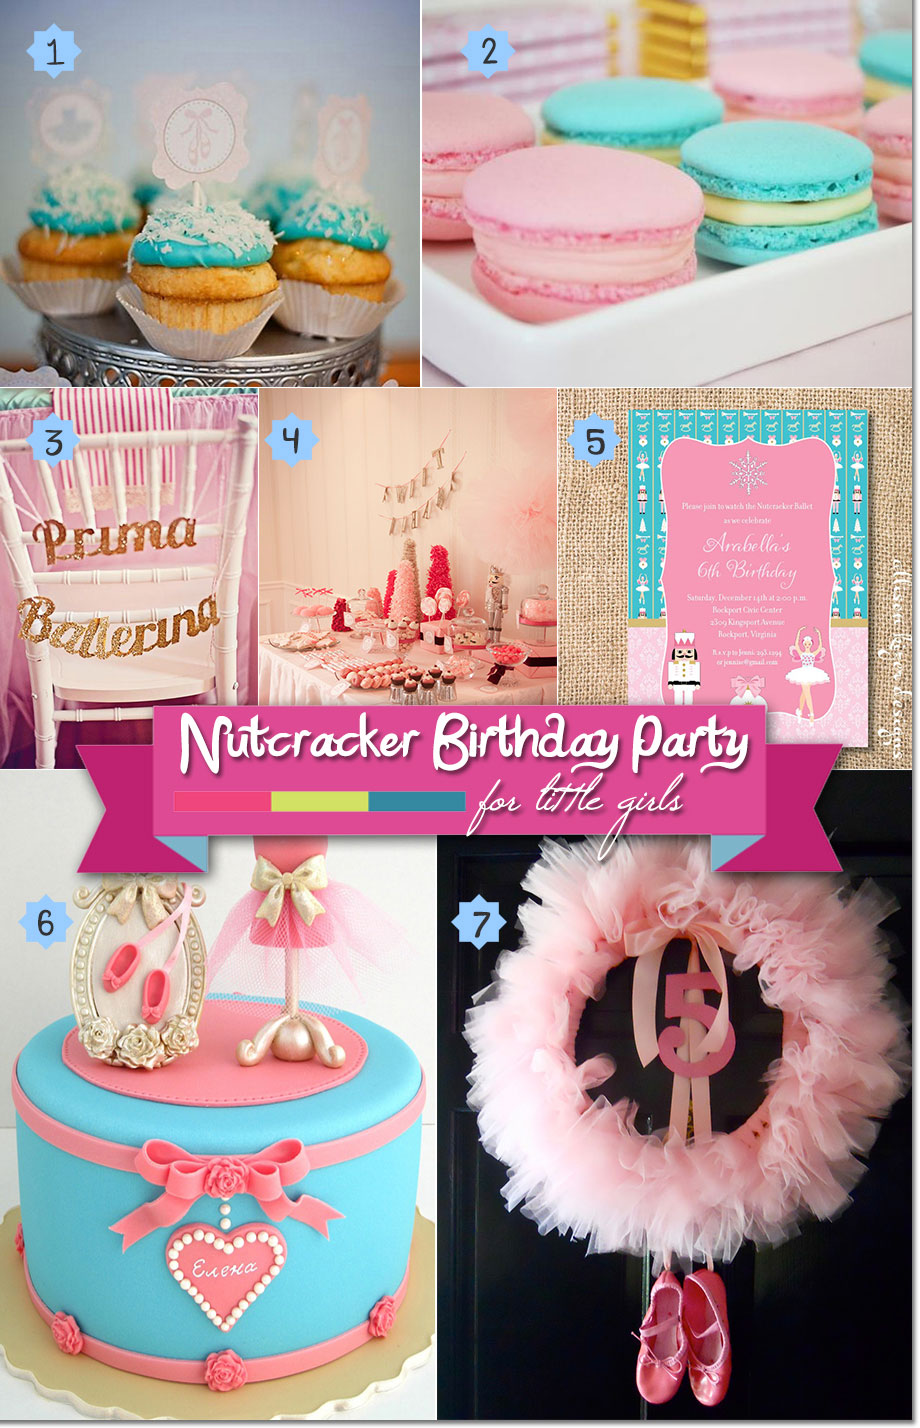 Ballerina Nutcracker party invitations, decor, sweets, and cake